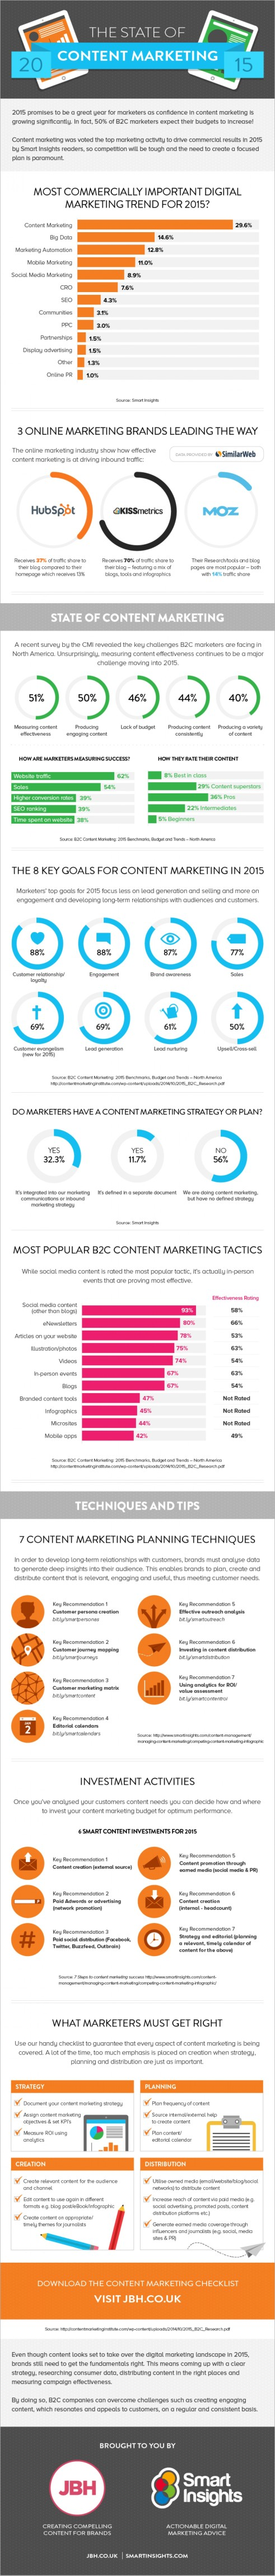 the-state-of-content-marketing-2015_552d31d3303b9_w1500